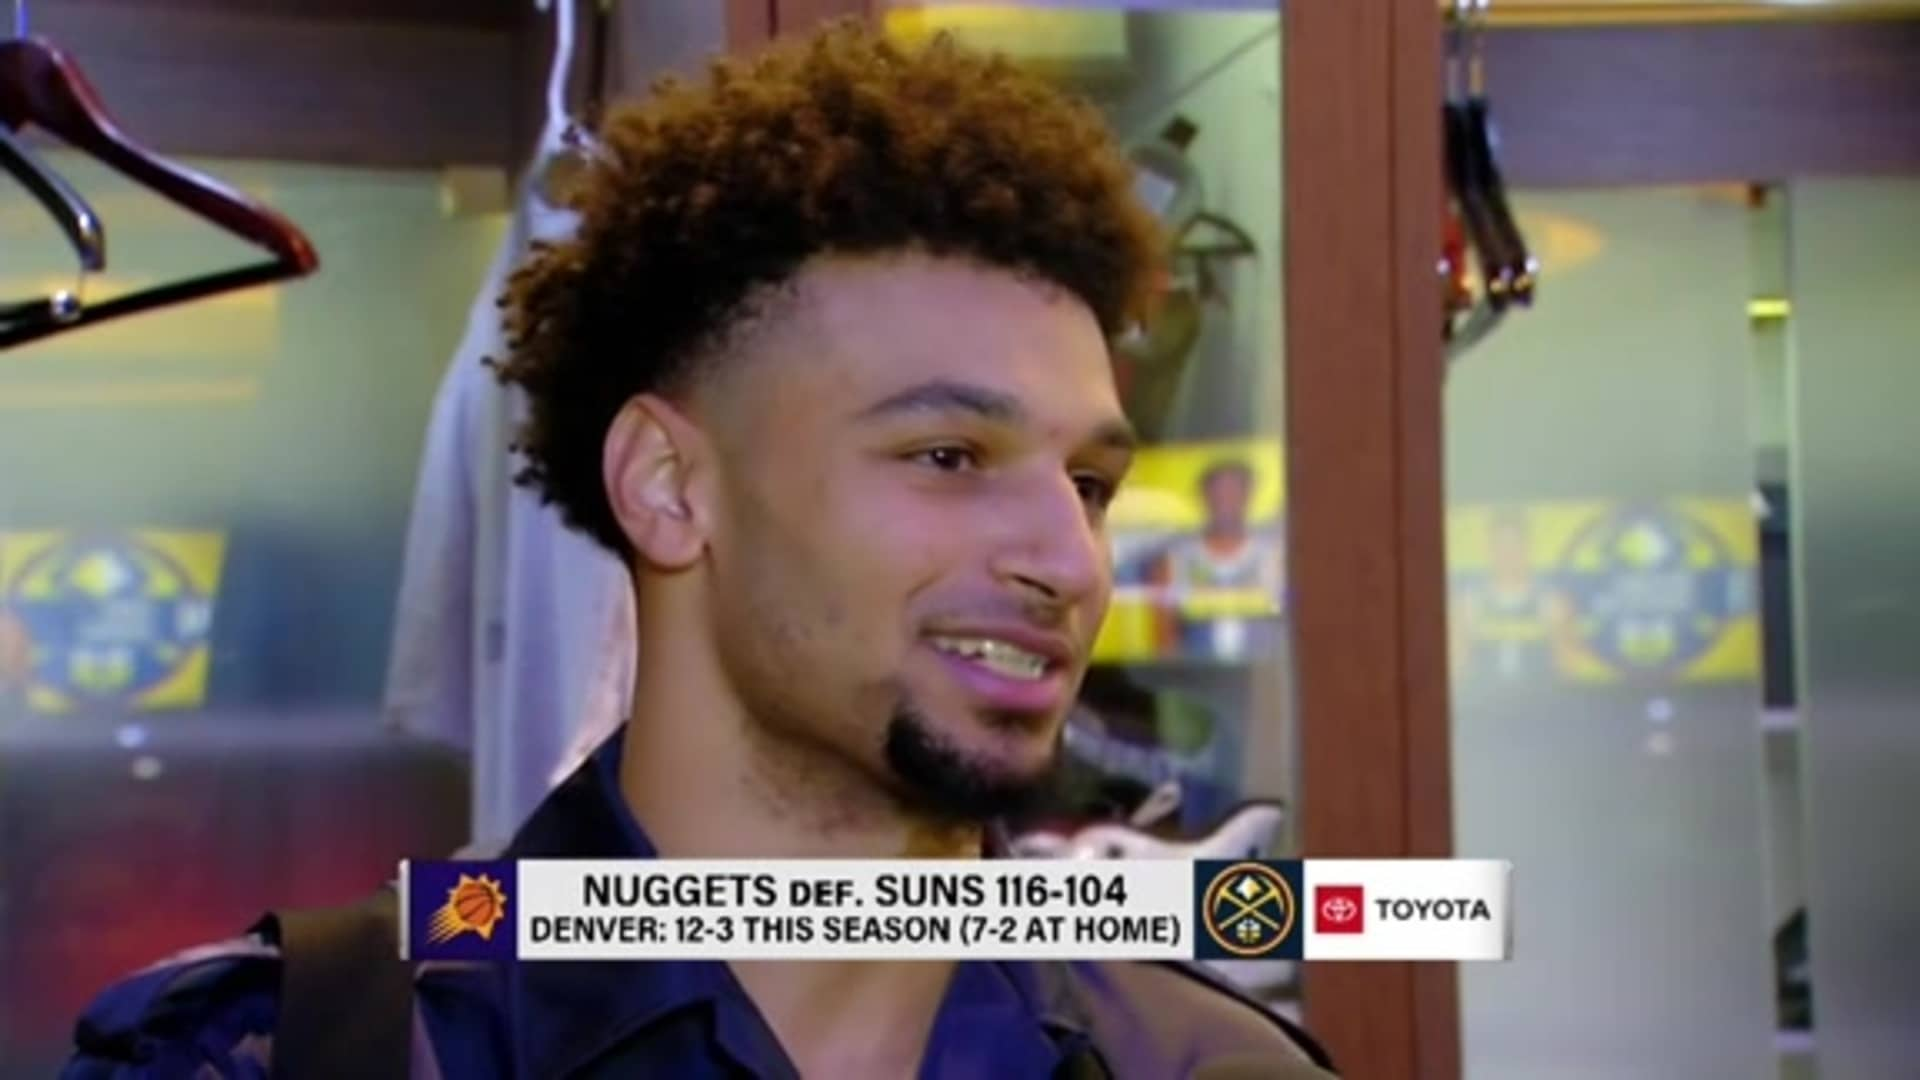 Nuggets vs. Suns: Jamal Murray postgame interview